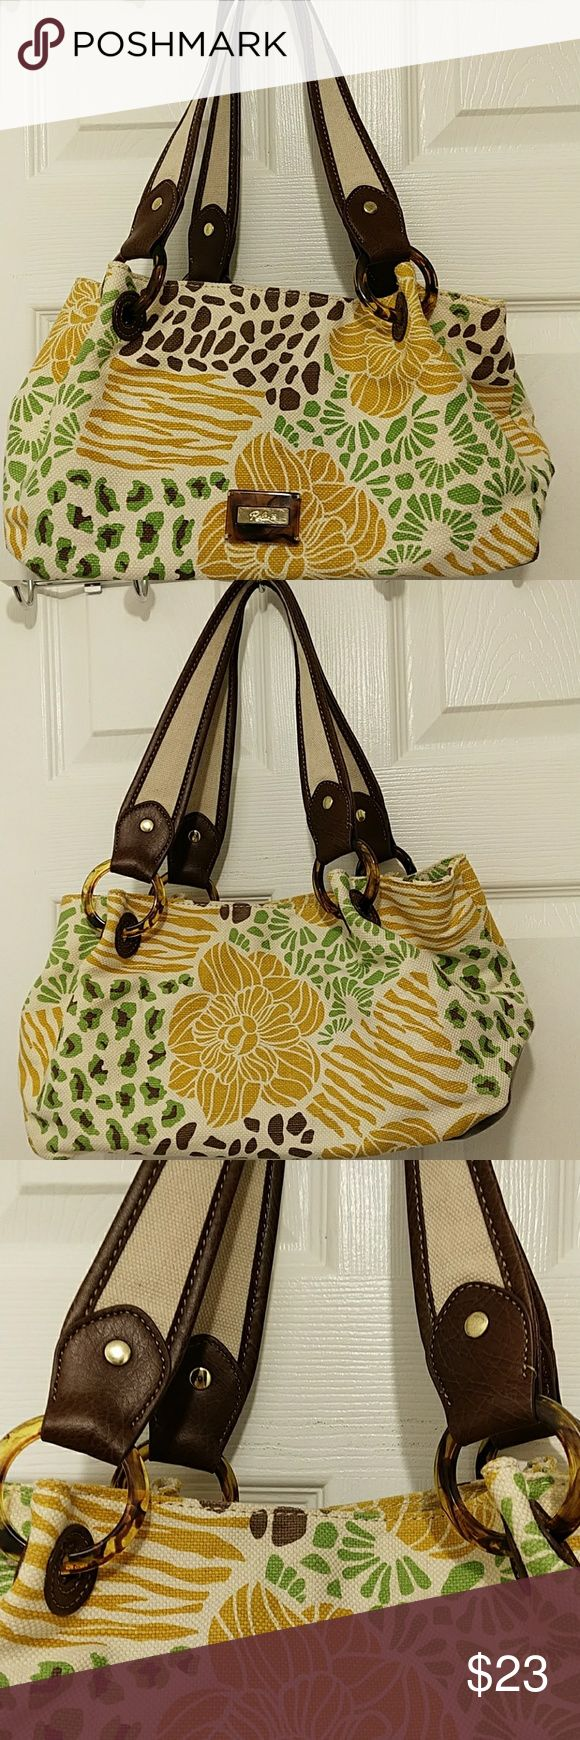 """Relic floral shoulder bag Like new , great condition no stains no rips ,3 compartments inside,one zipp pocket ,one pouch, magnetic clousur measurements 14"""" x 7"""" x 6"""", strap drop  9"""". Relic Bags Shoulder Bags"""